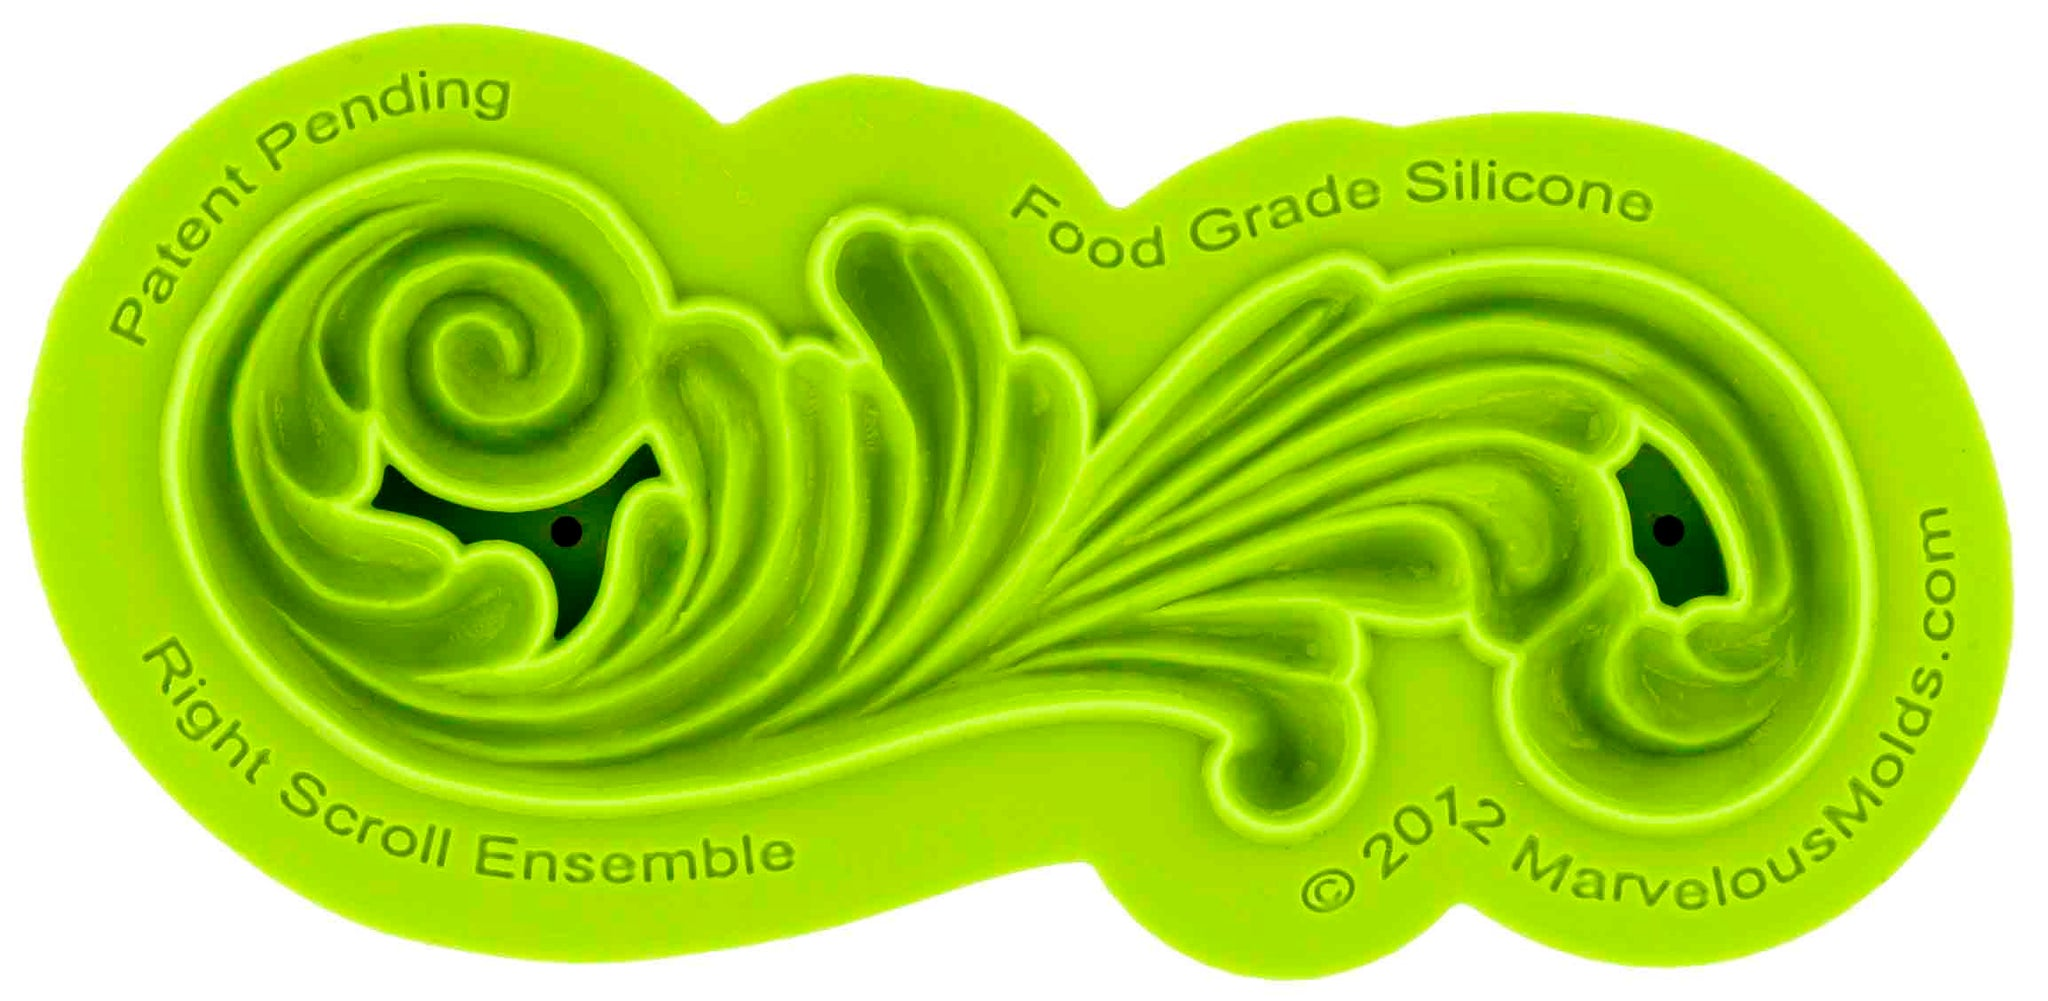 Right Scroll Ensemble Mold - Dragonfly Cake Supply, Alberta, Canada